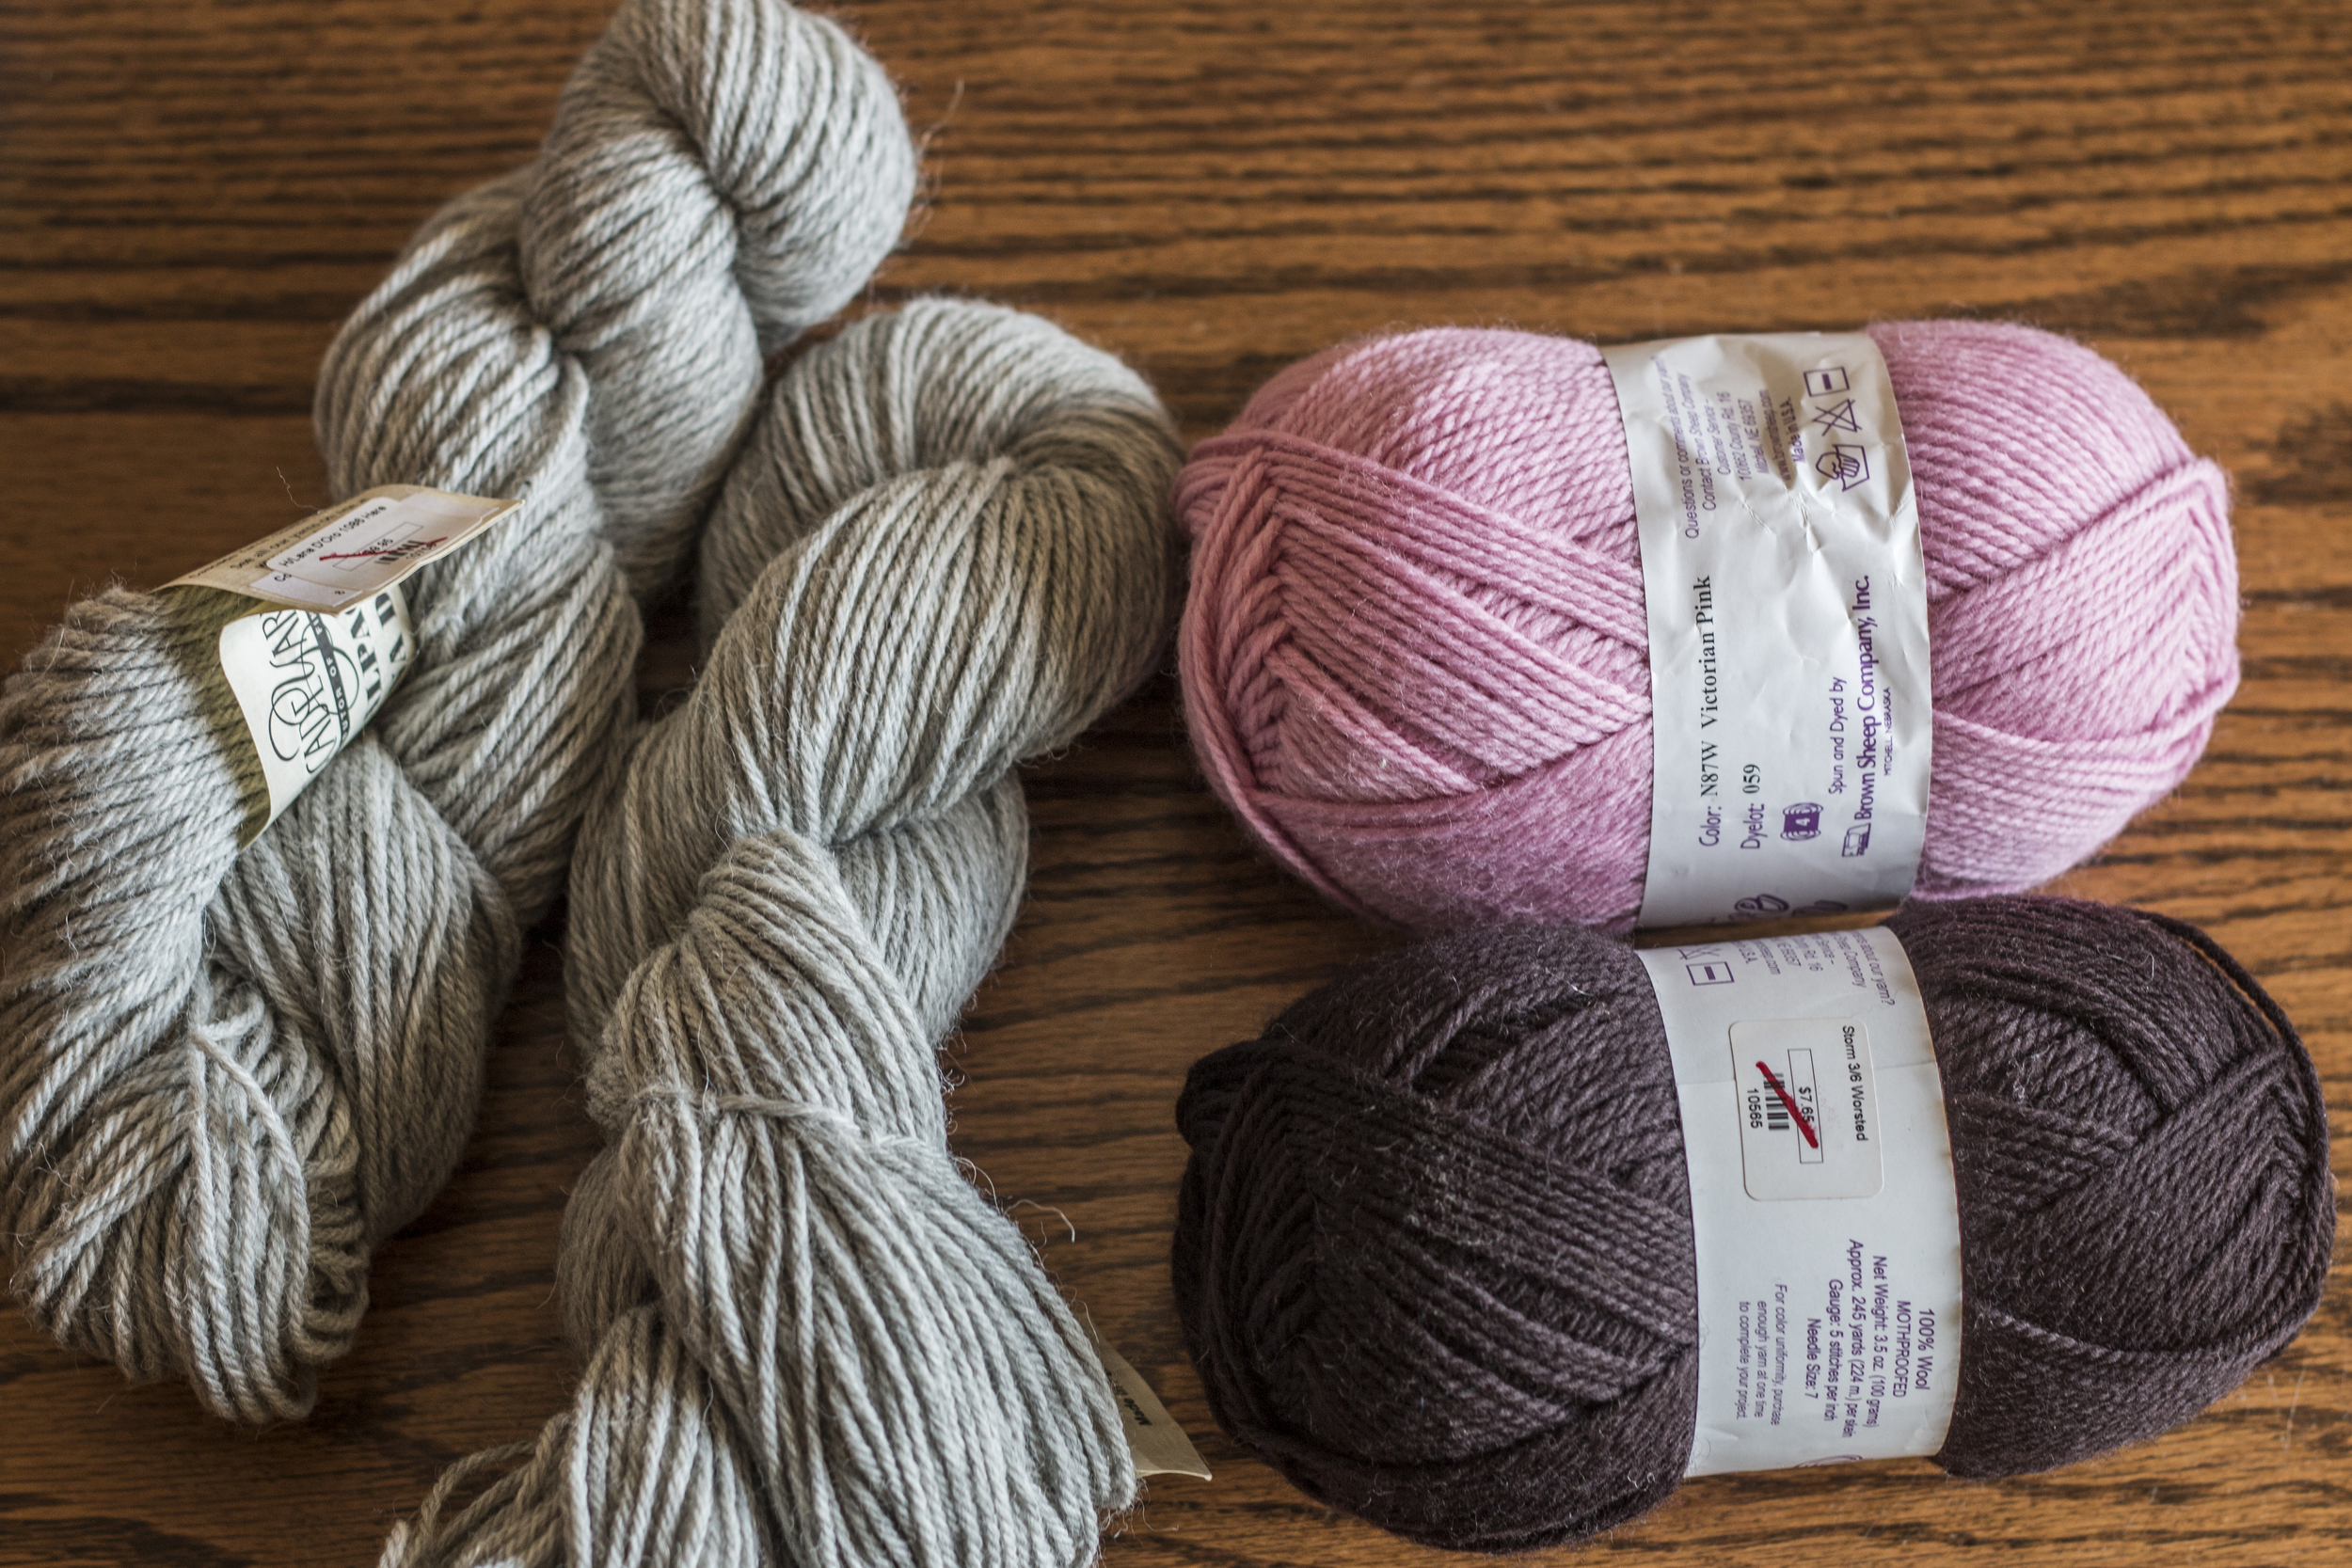 The yarns appear to be high contrast...